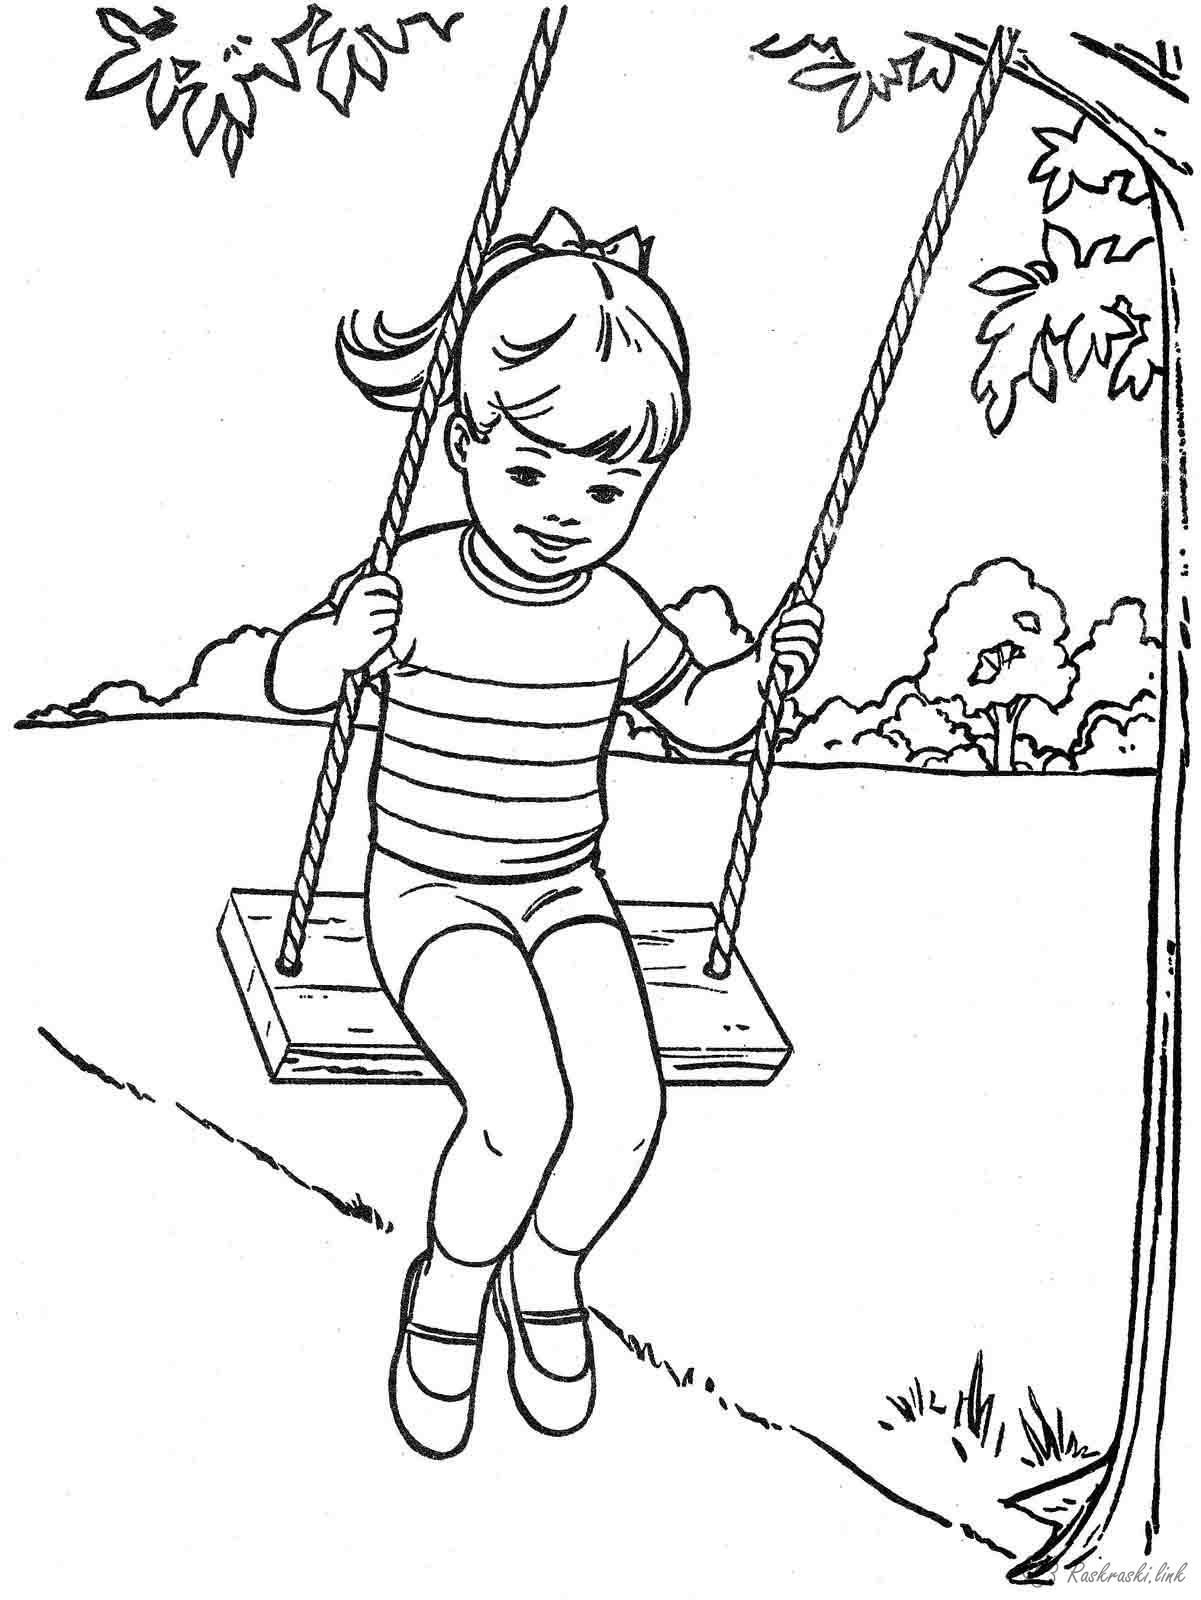 Swinging clipart coloring page graphic library library Free Swing Coloring Page, Download Free Clip Art, Free Clip ... graphic library library